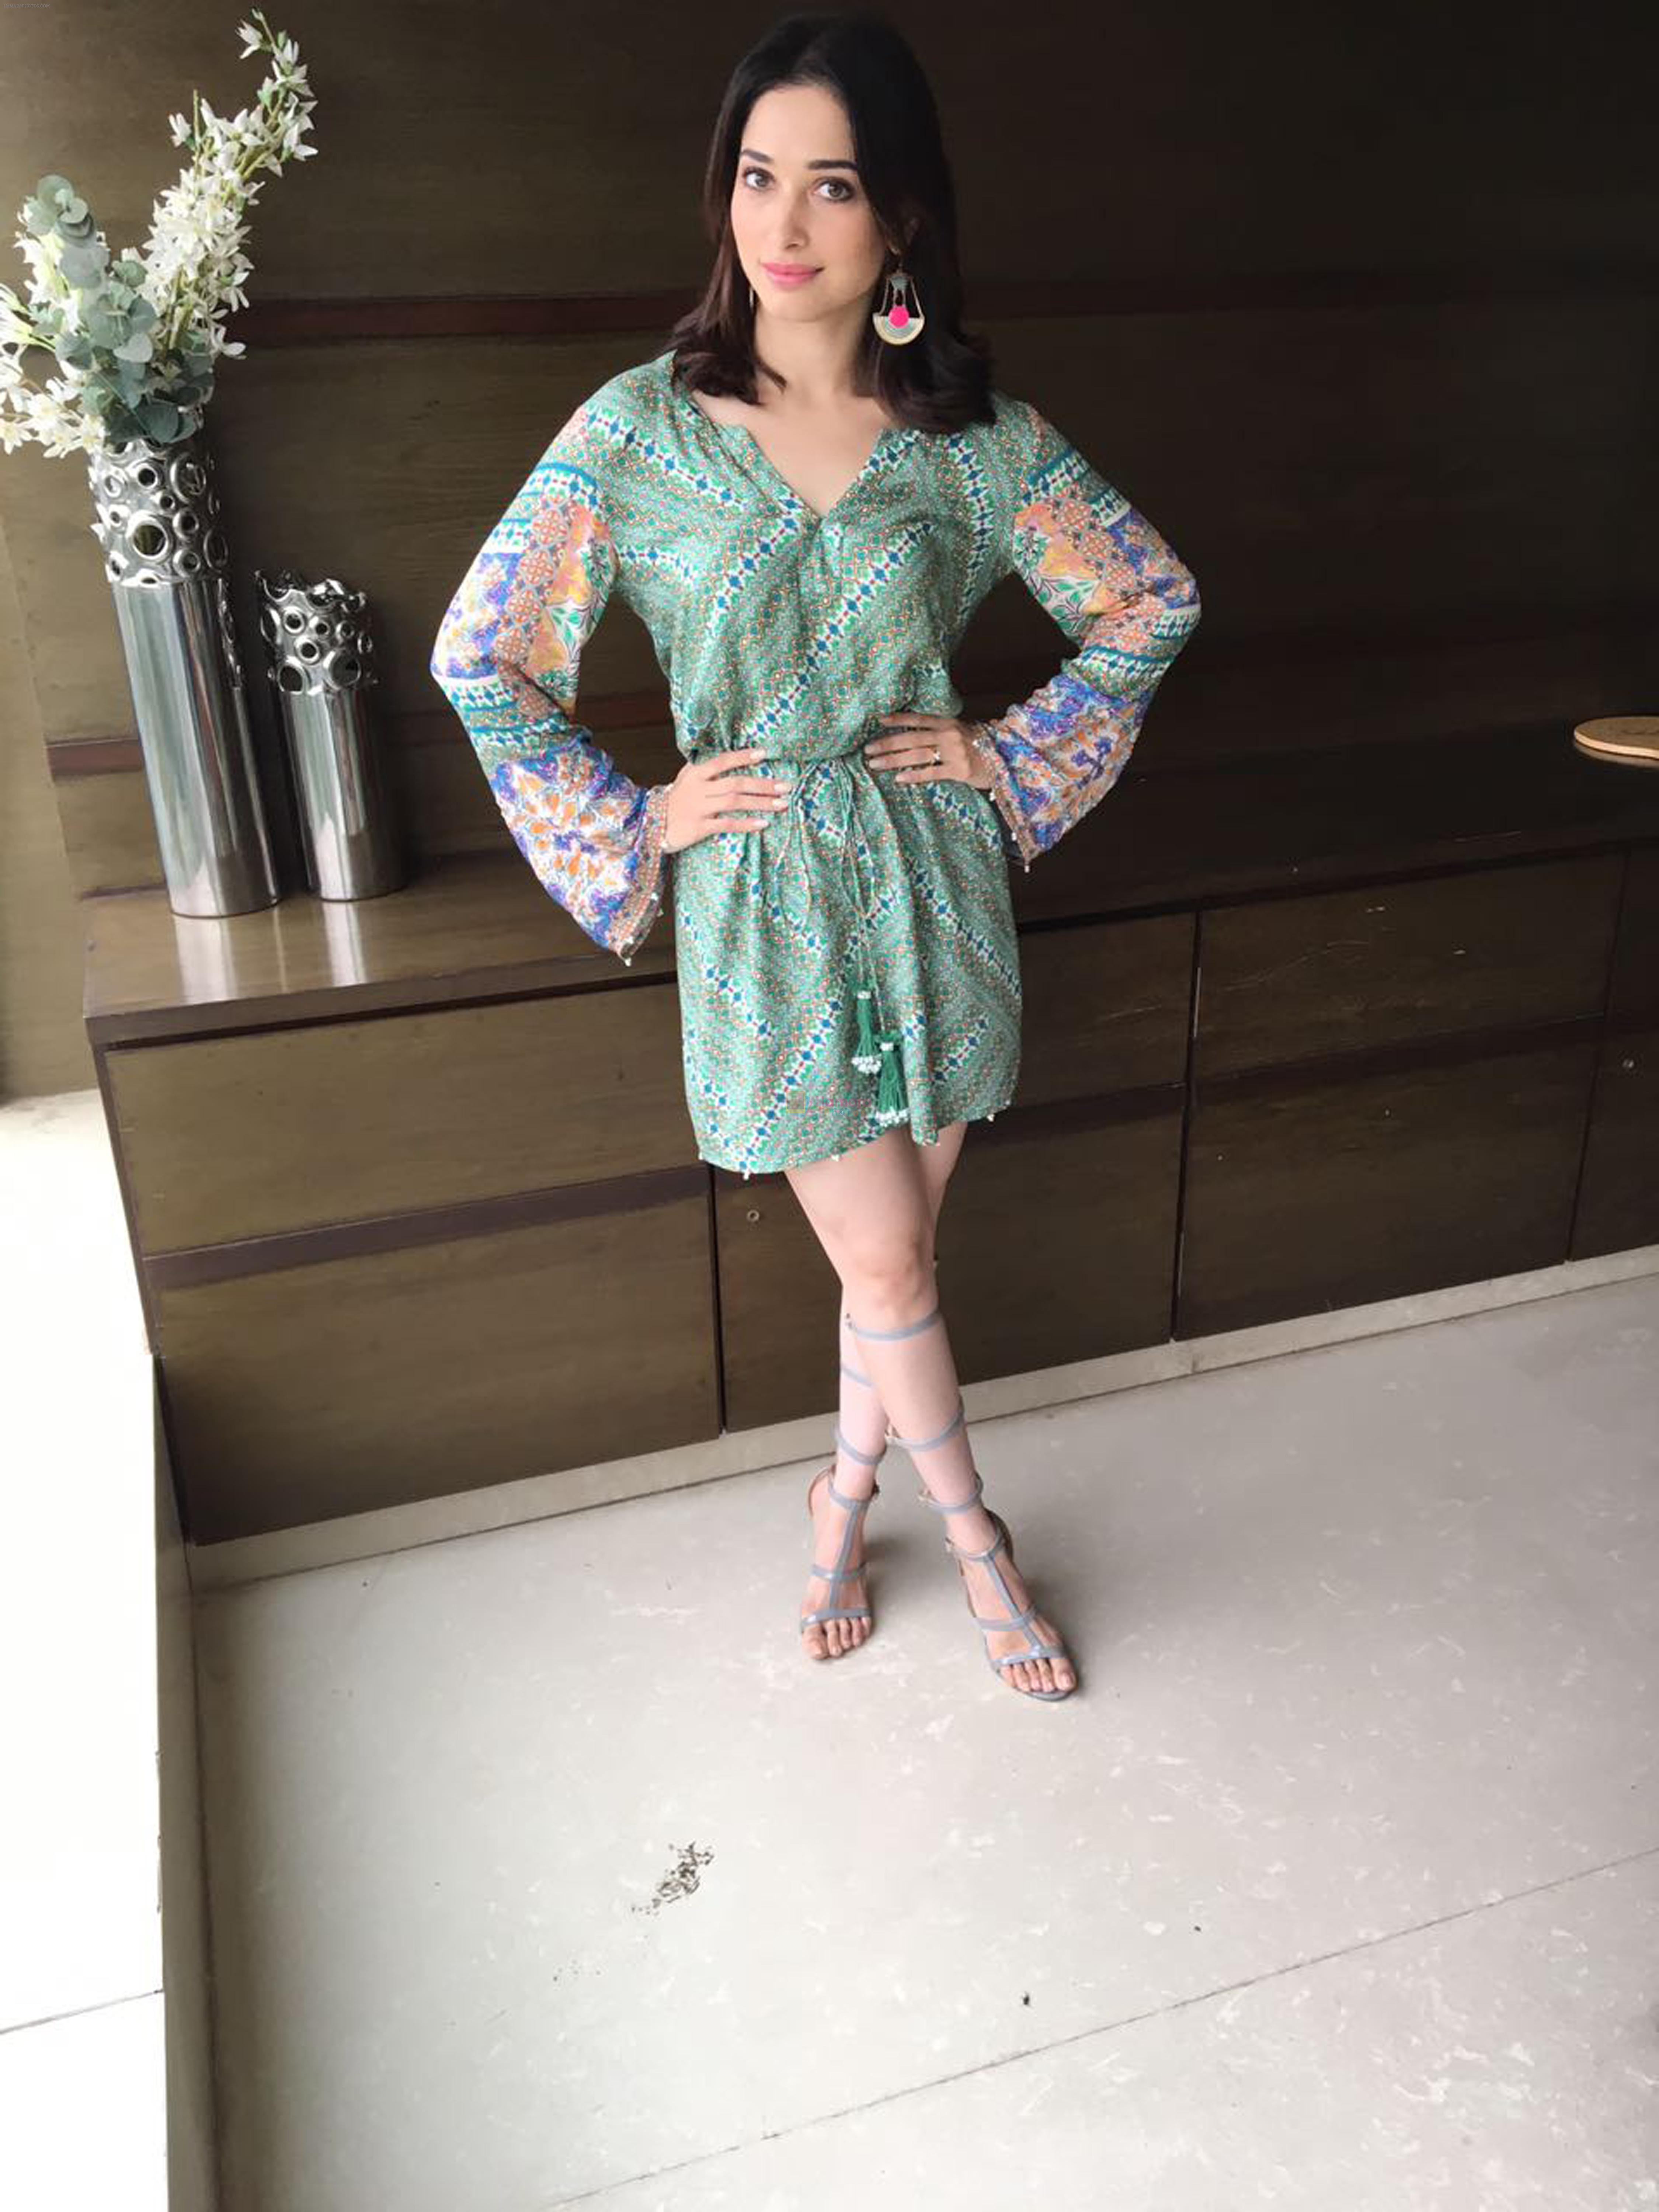 Tamannah Bhatia looking ravishing during the promotions of of her upcoming film Tutak Tutak Tutiya